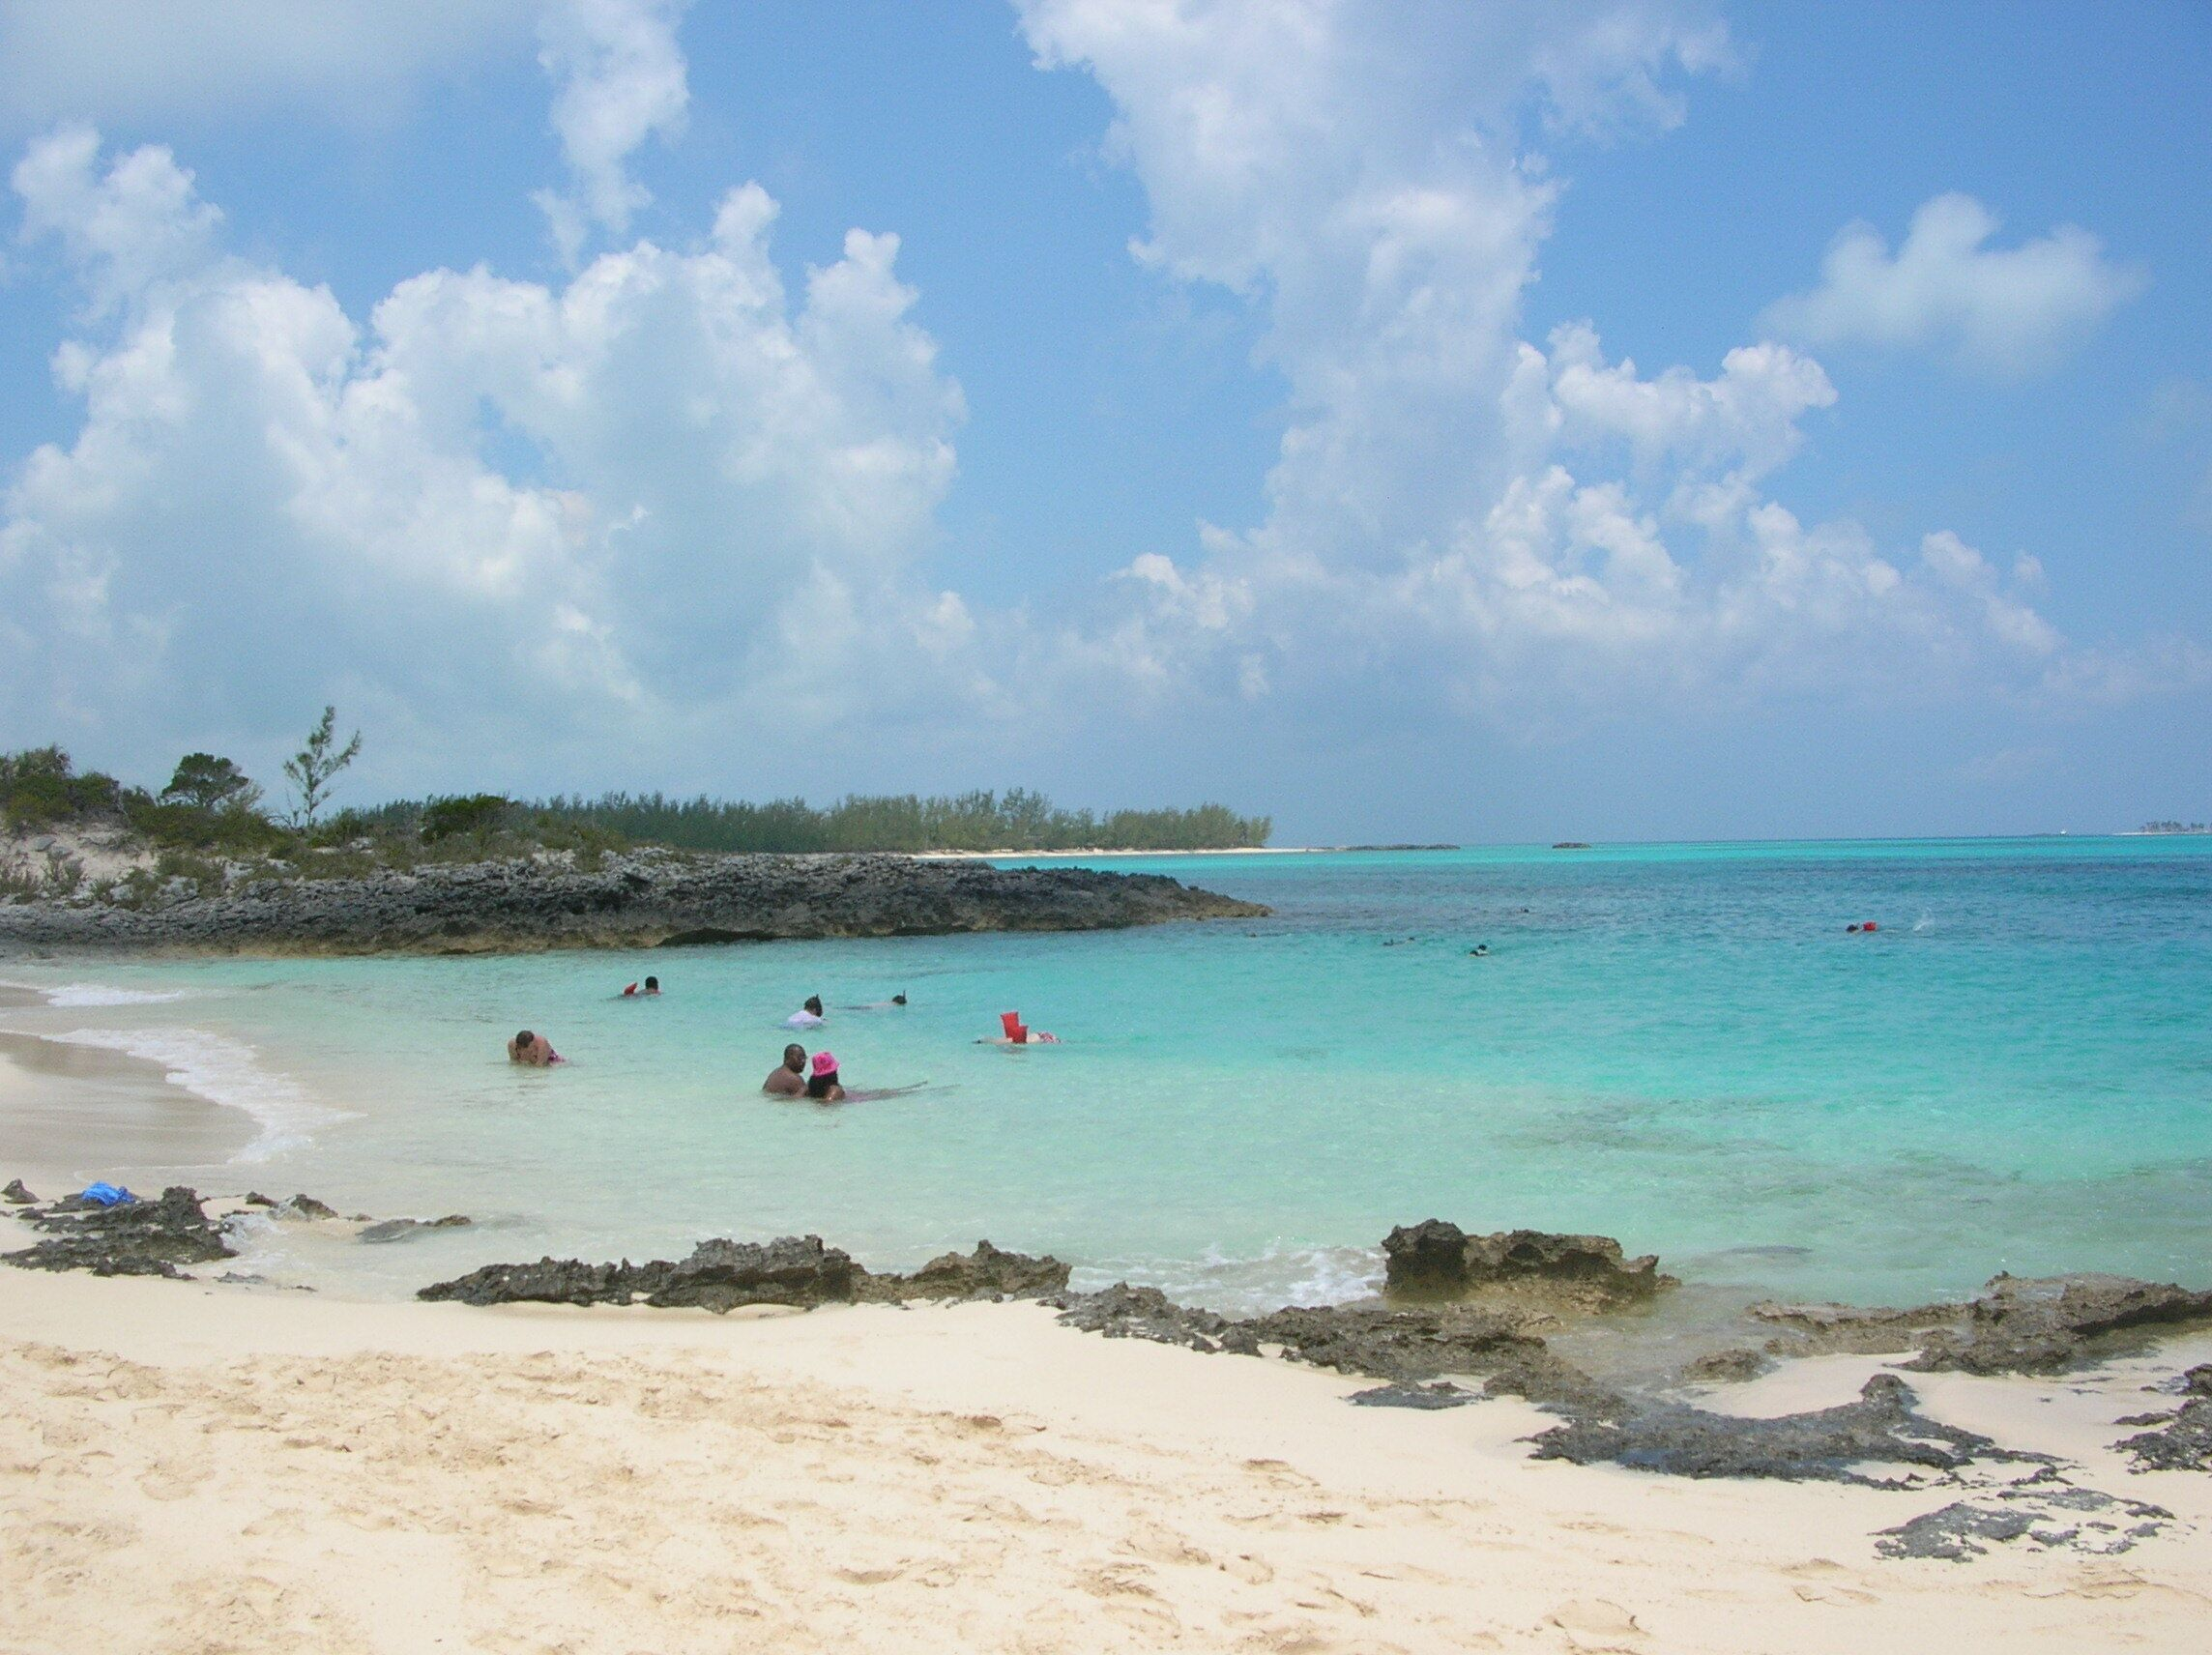 A 21-year-old woman has died after she was attacked by several sharks while snorkeling near Rose Island, pictured, in the Bah